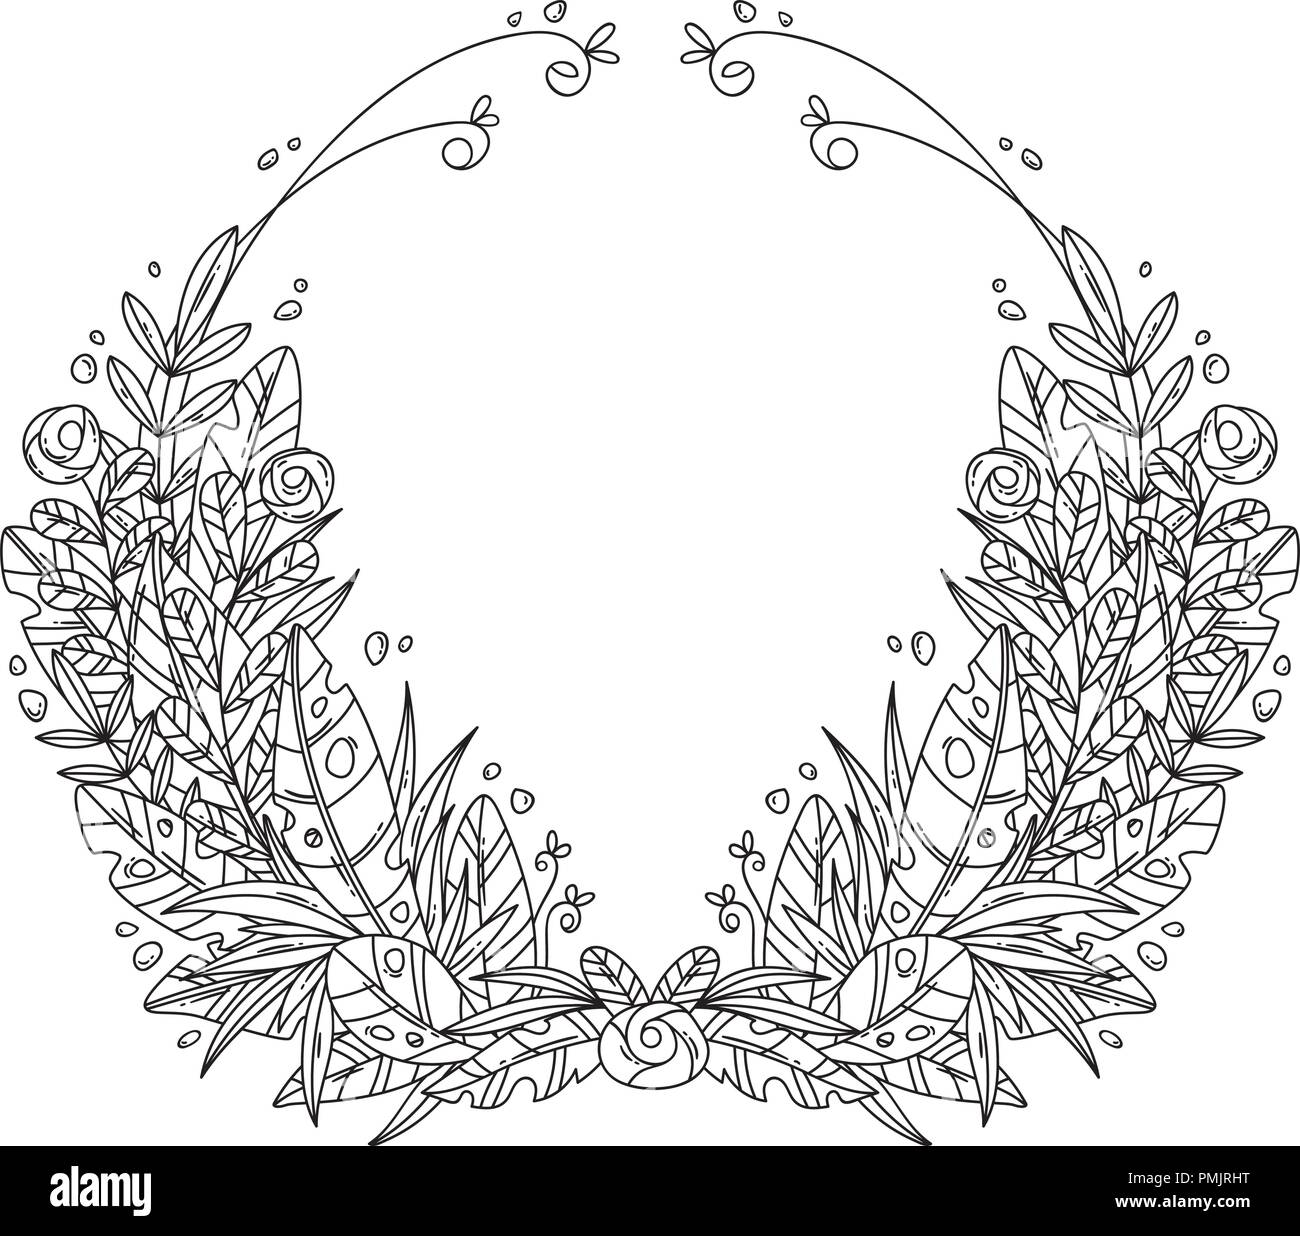 Floral Wreath Coloring Page Stock Photos Floral Wreath Coloring